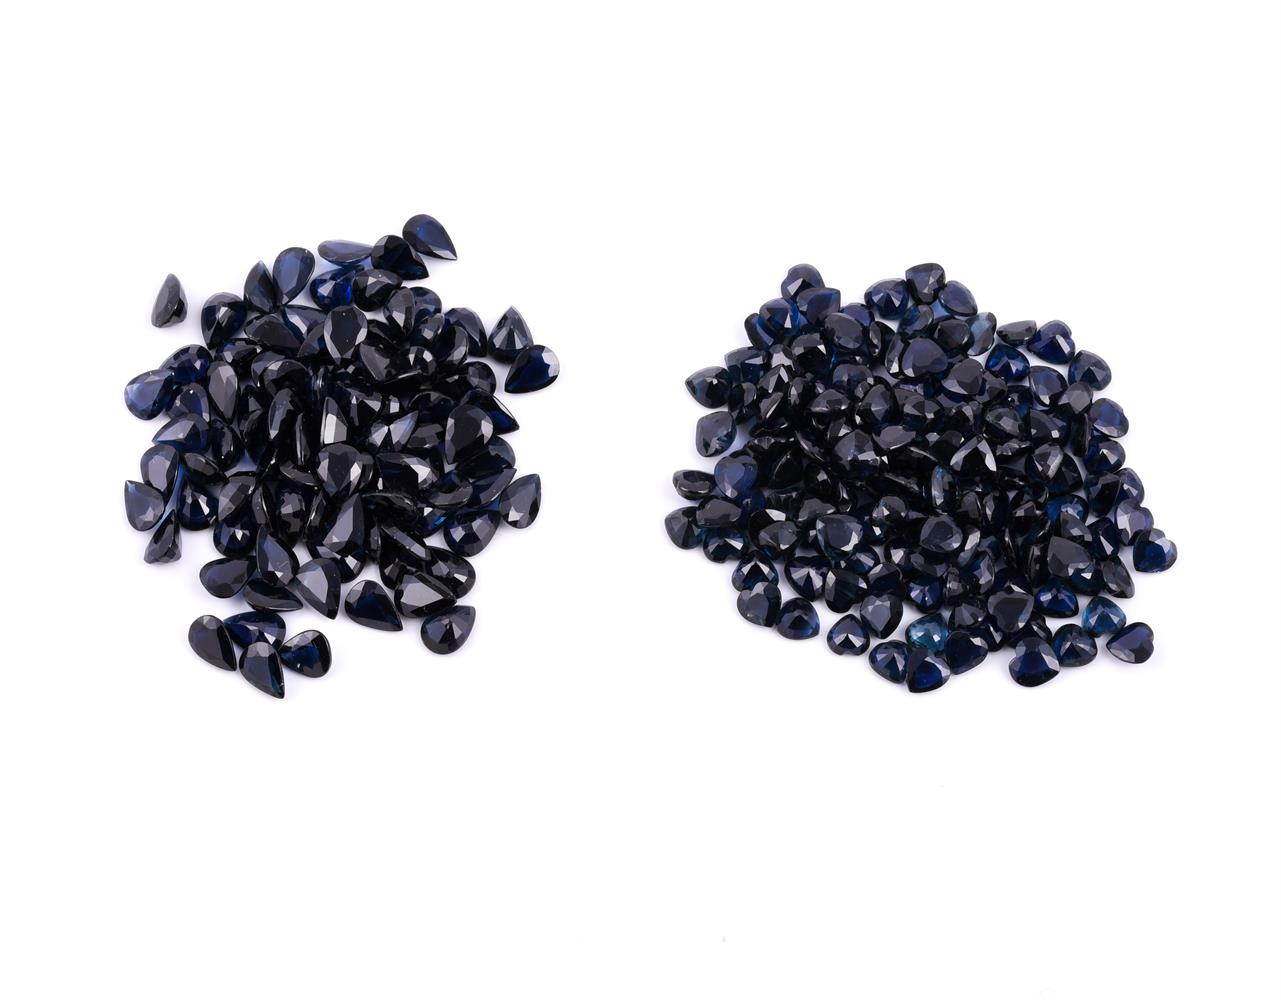 † Two packets of unmounted sapphires